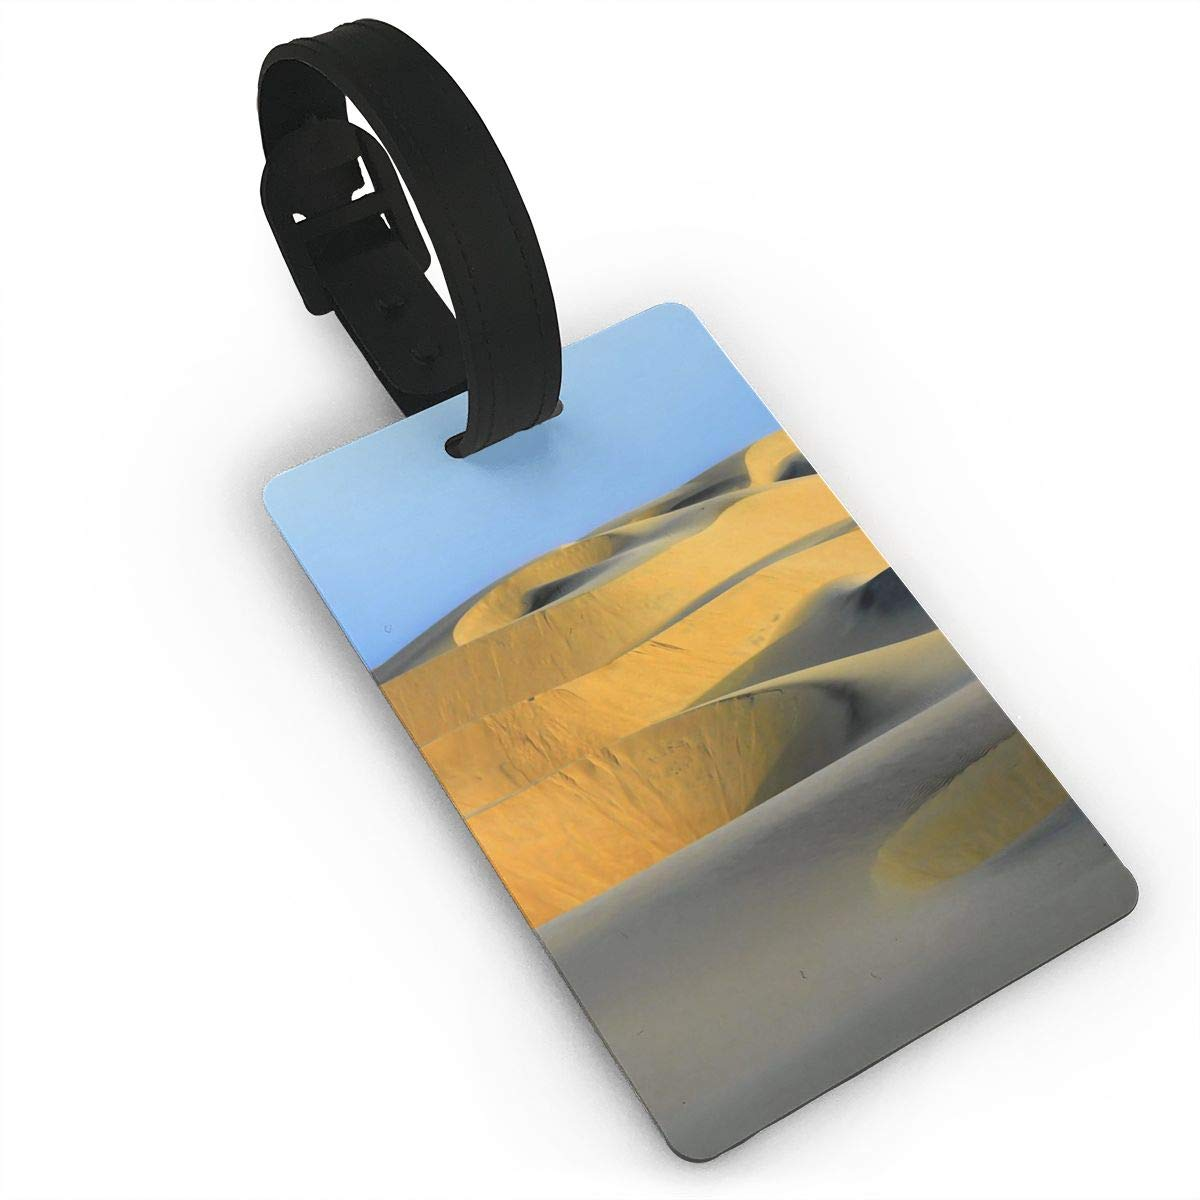 Desert Travel Tags For Travel Tags Accessories 2 Pack Luggage Tags